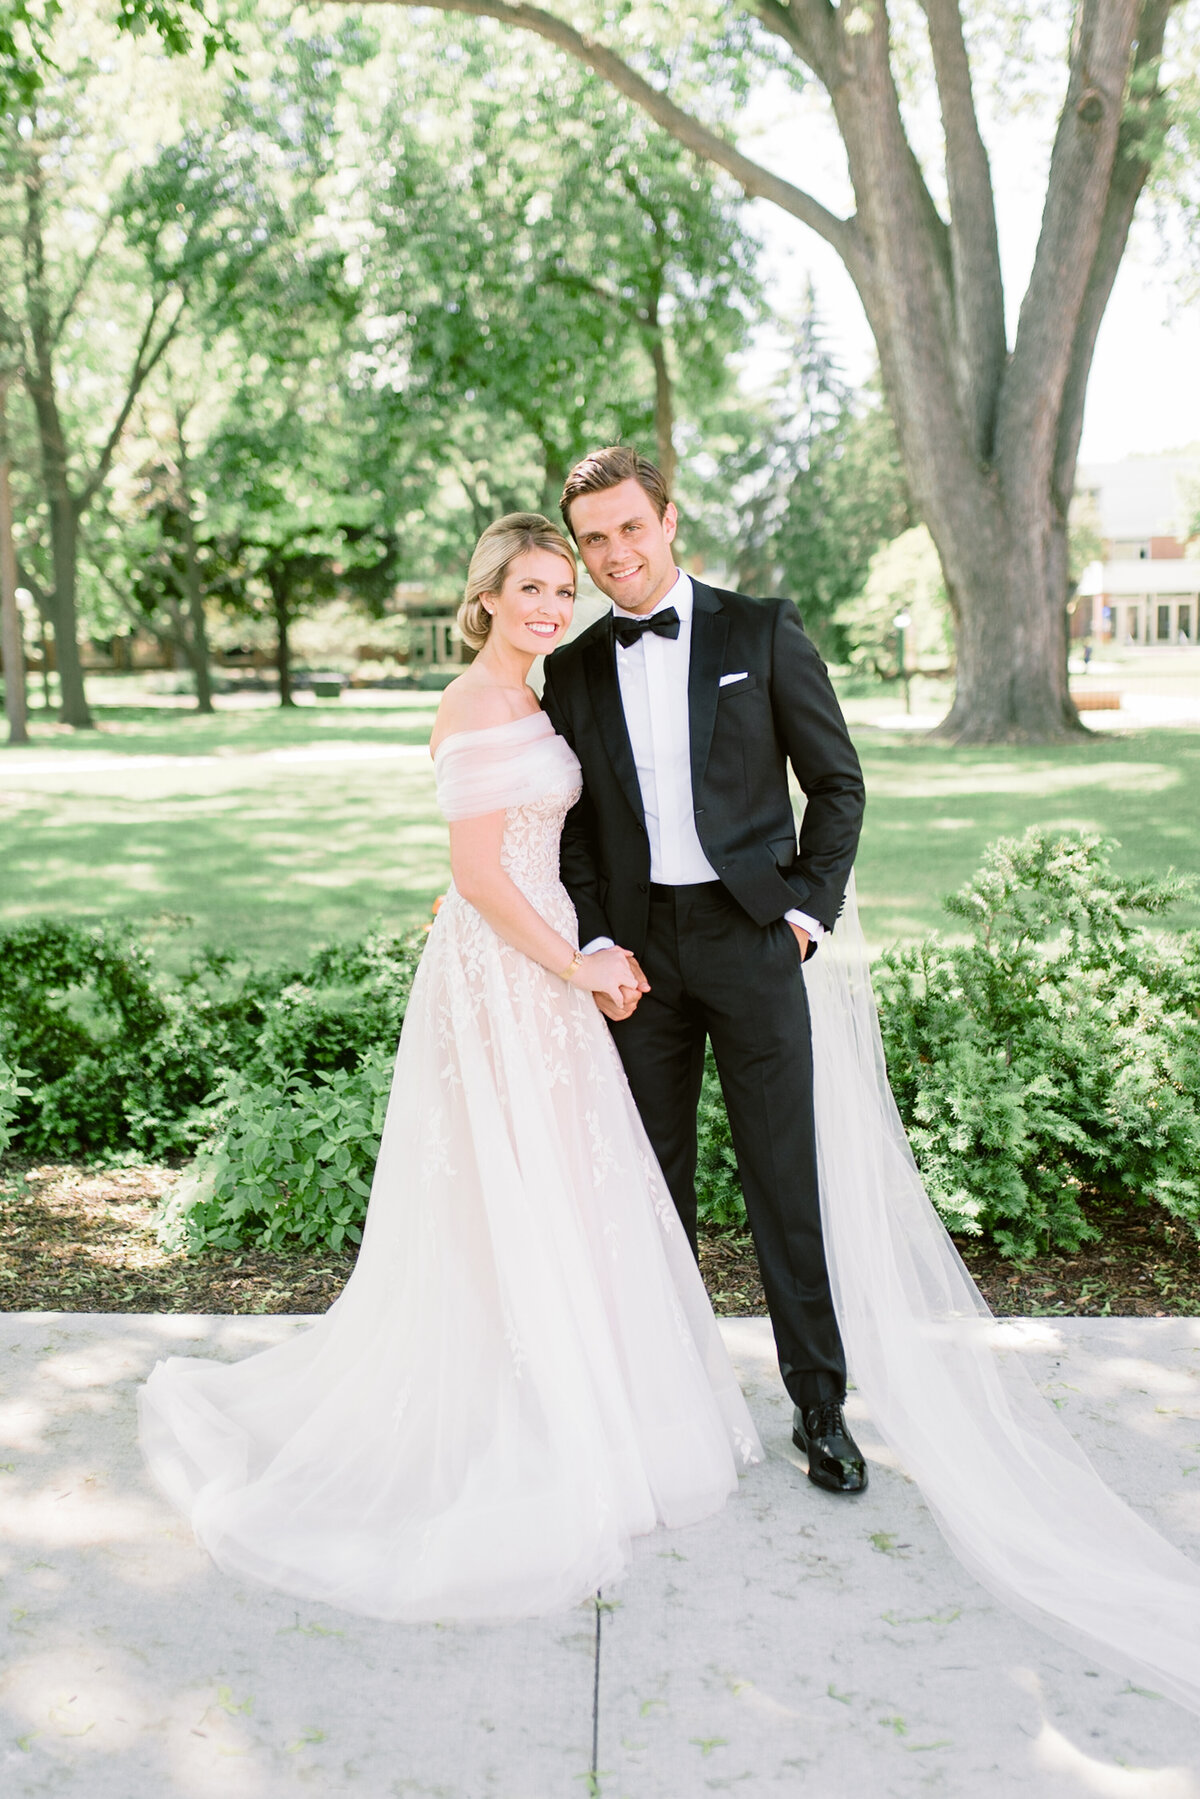 Minneapolis Wedding Photographer, Minnesota wedding photographer, MN wedding photographer, Minneapolis light and airy photographer, Green Bay photographer, Green Bay wedding photographer4